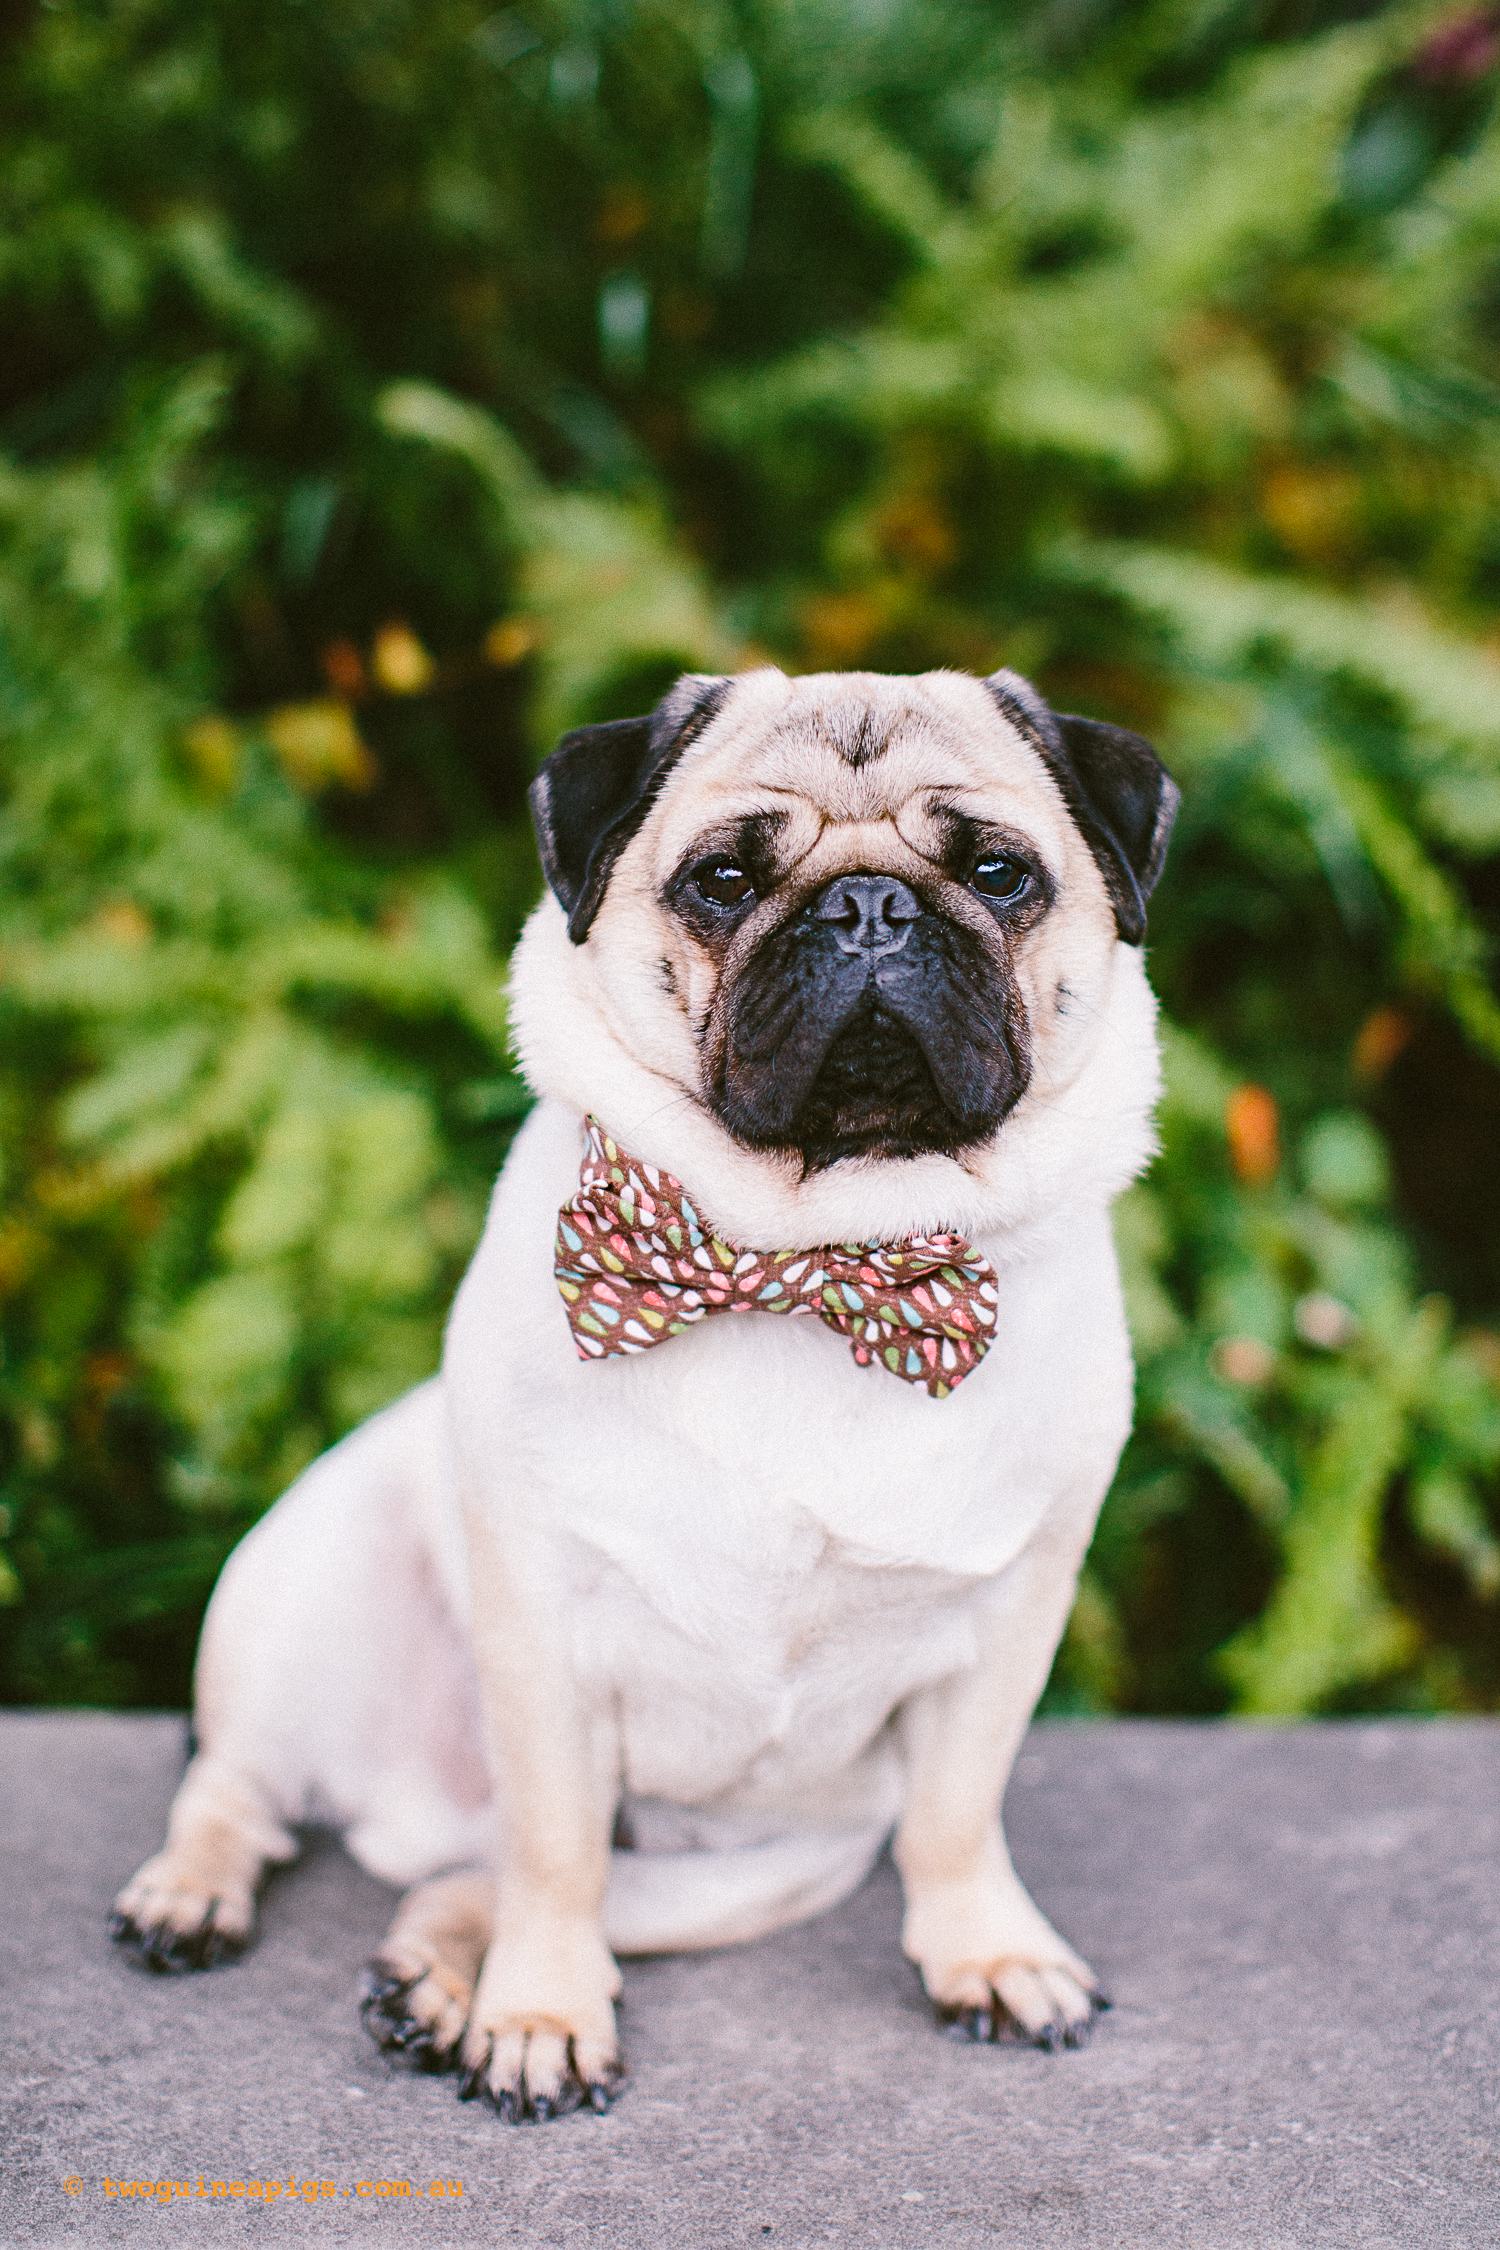 twoguineapigs_pet_photography_oh_jaffa_picnic_pugs_rodger_1500-32.jpg